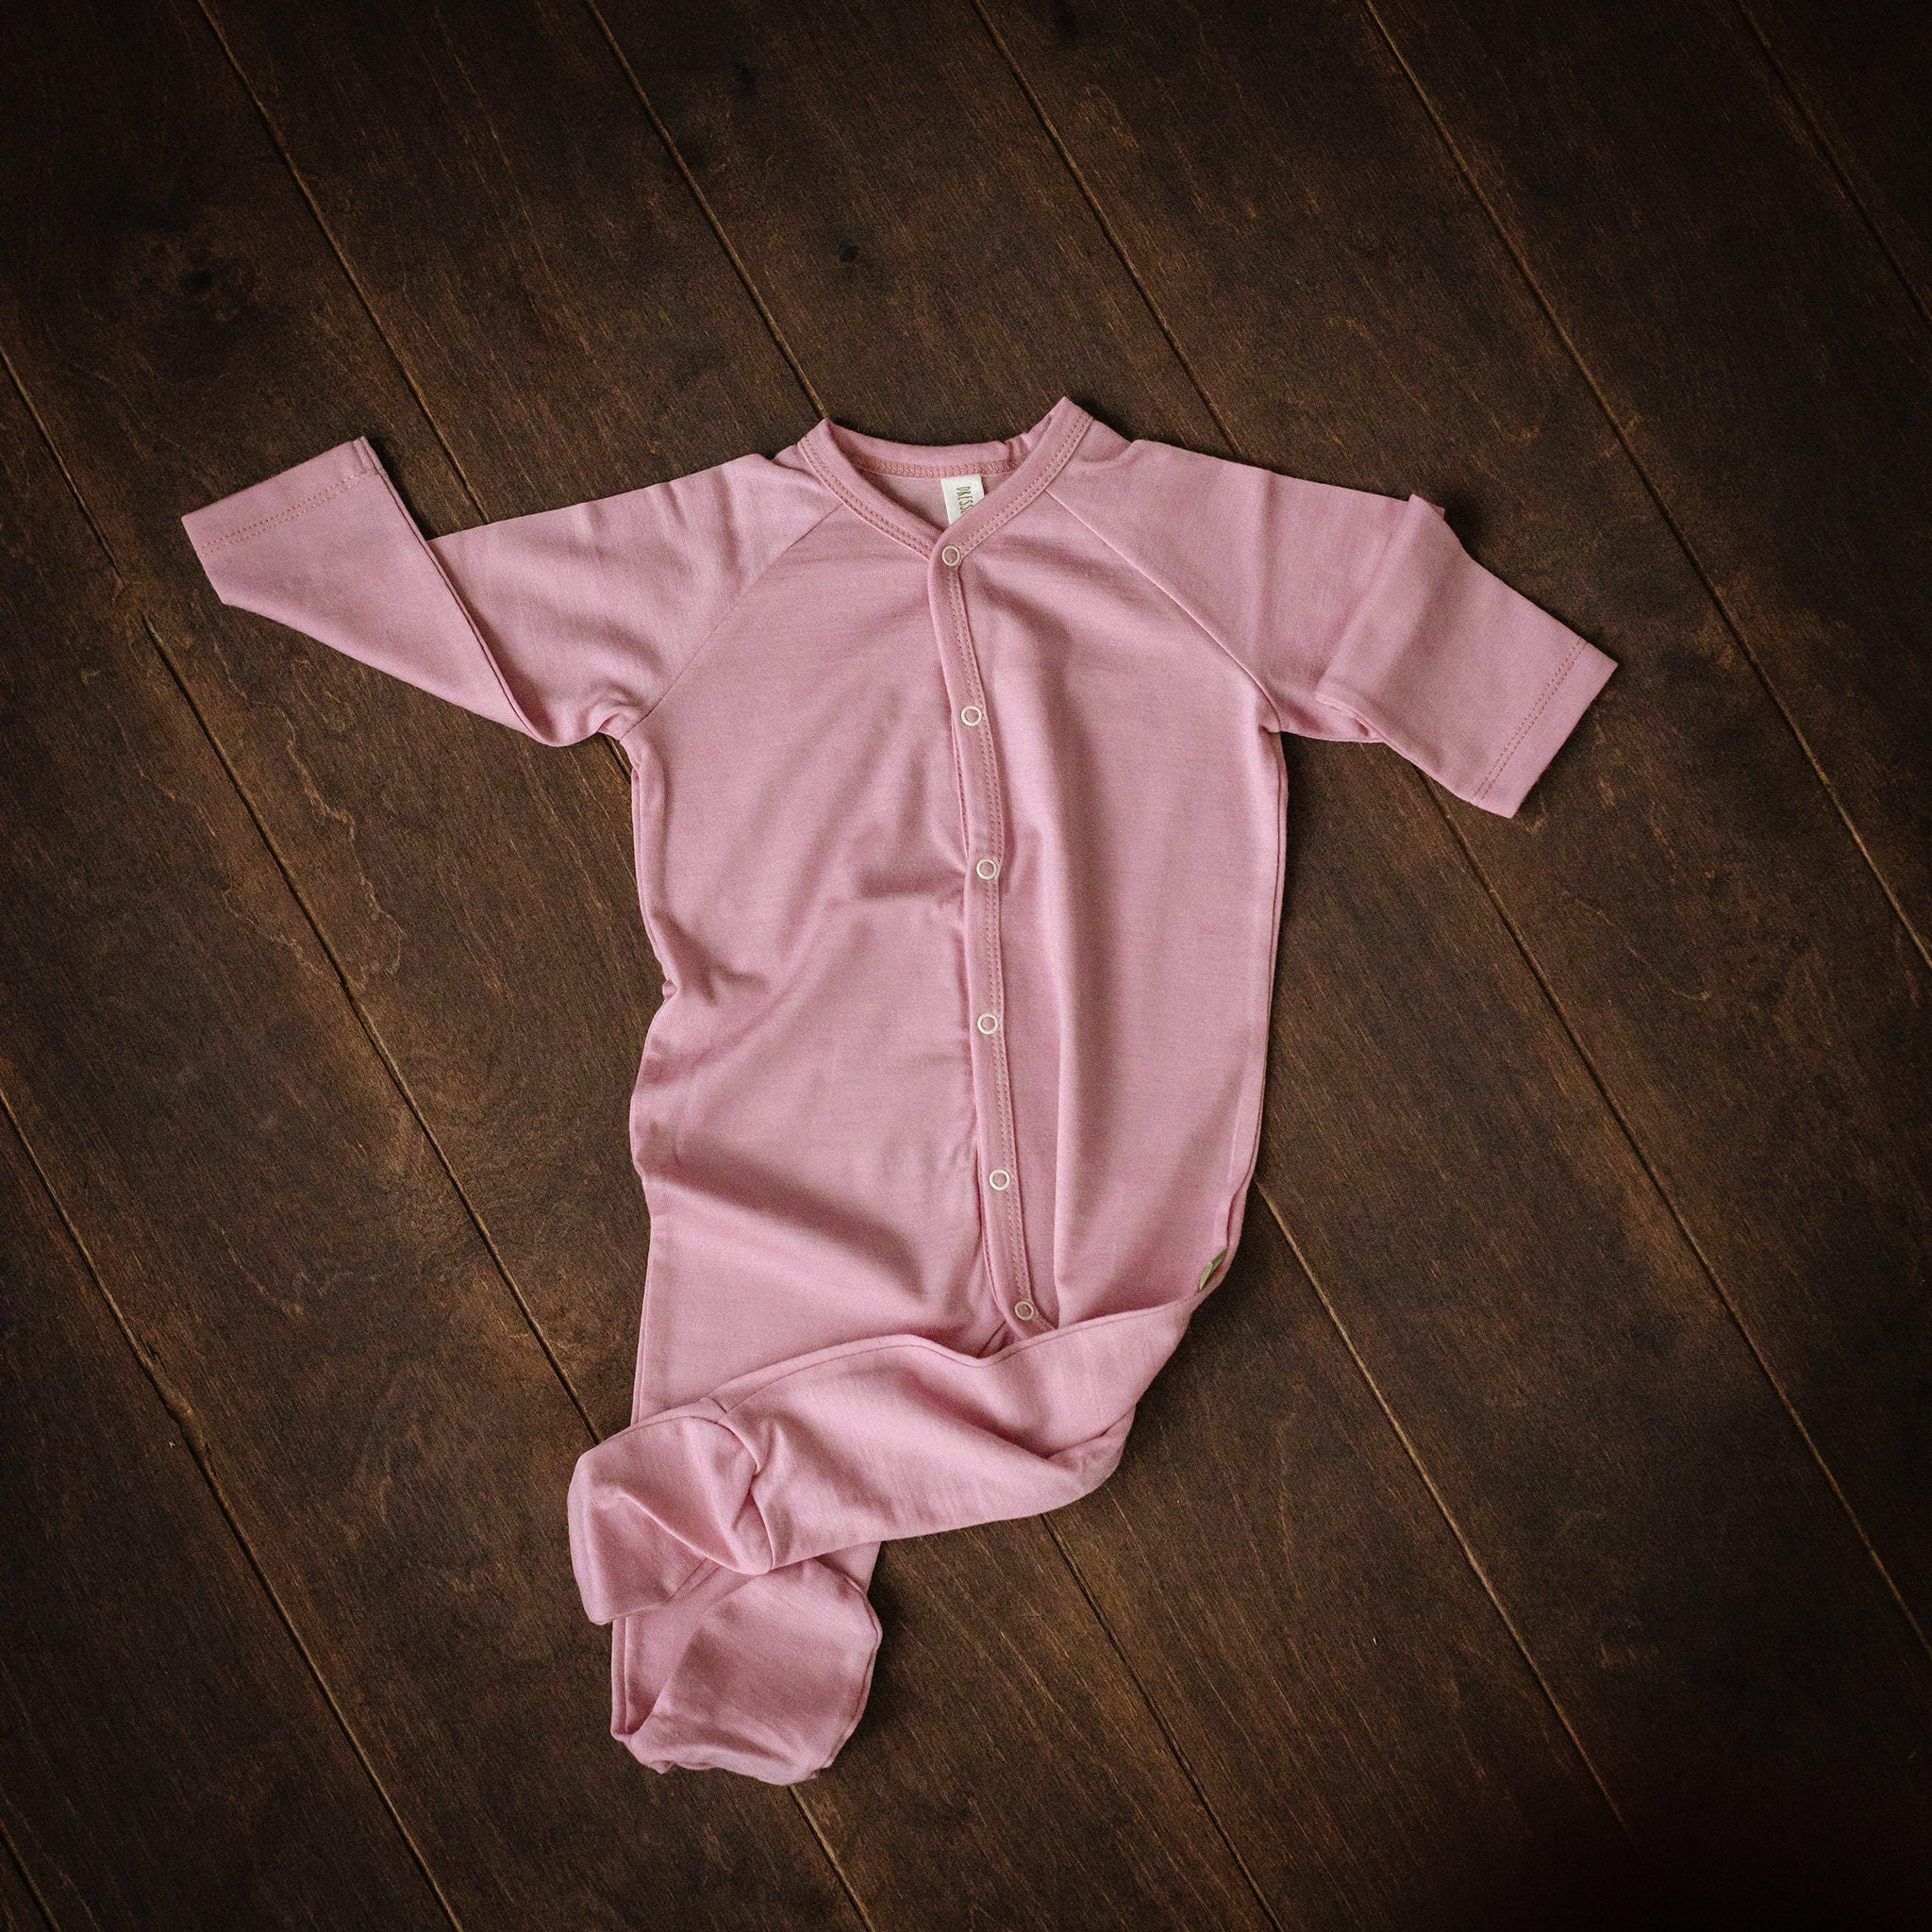 Pink Merino Wool Playsuit with Feet